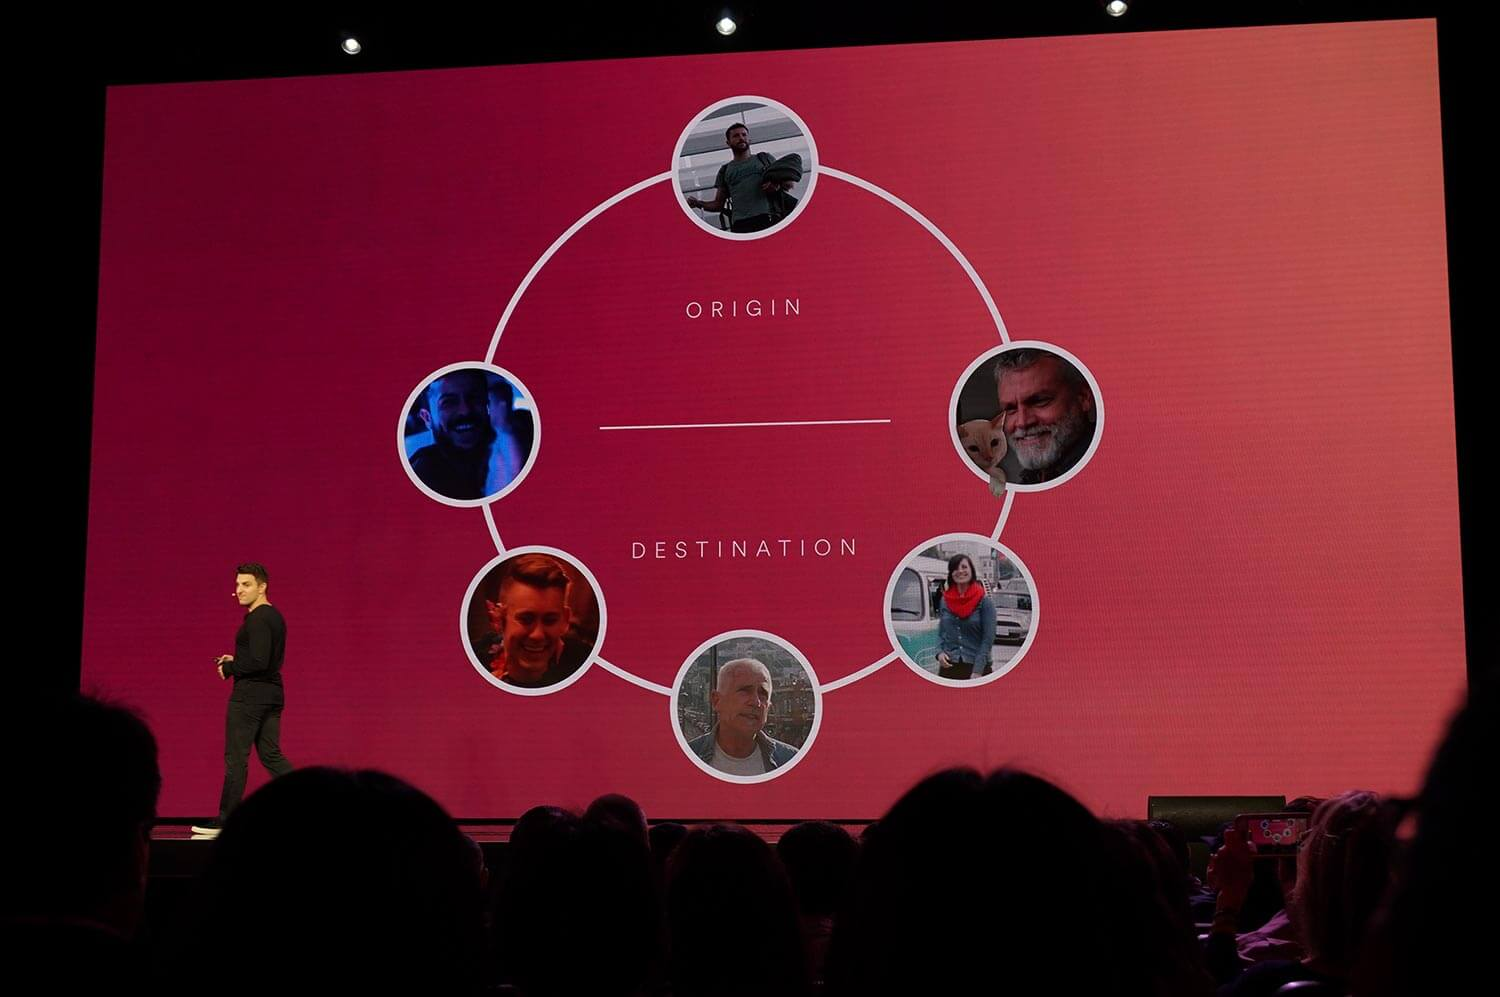 Airbnb chief executive Brian Chesky explains the company's vision.